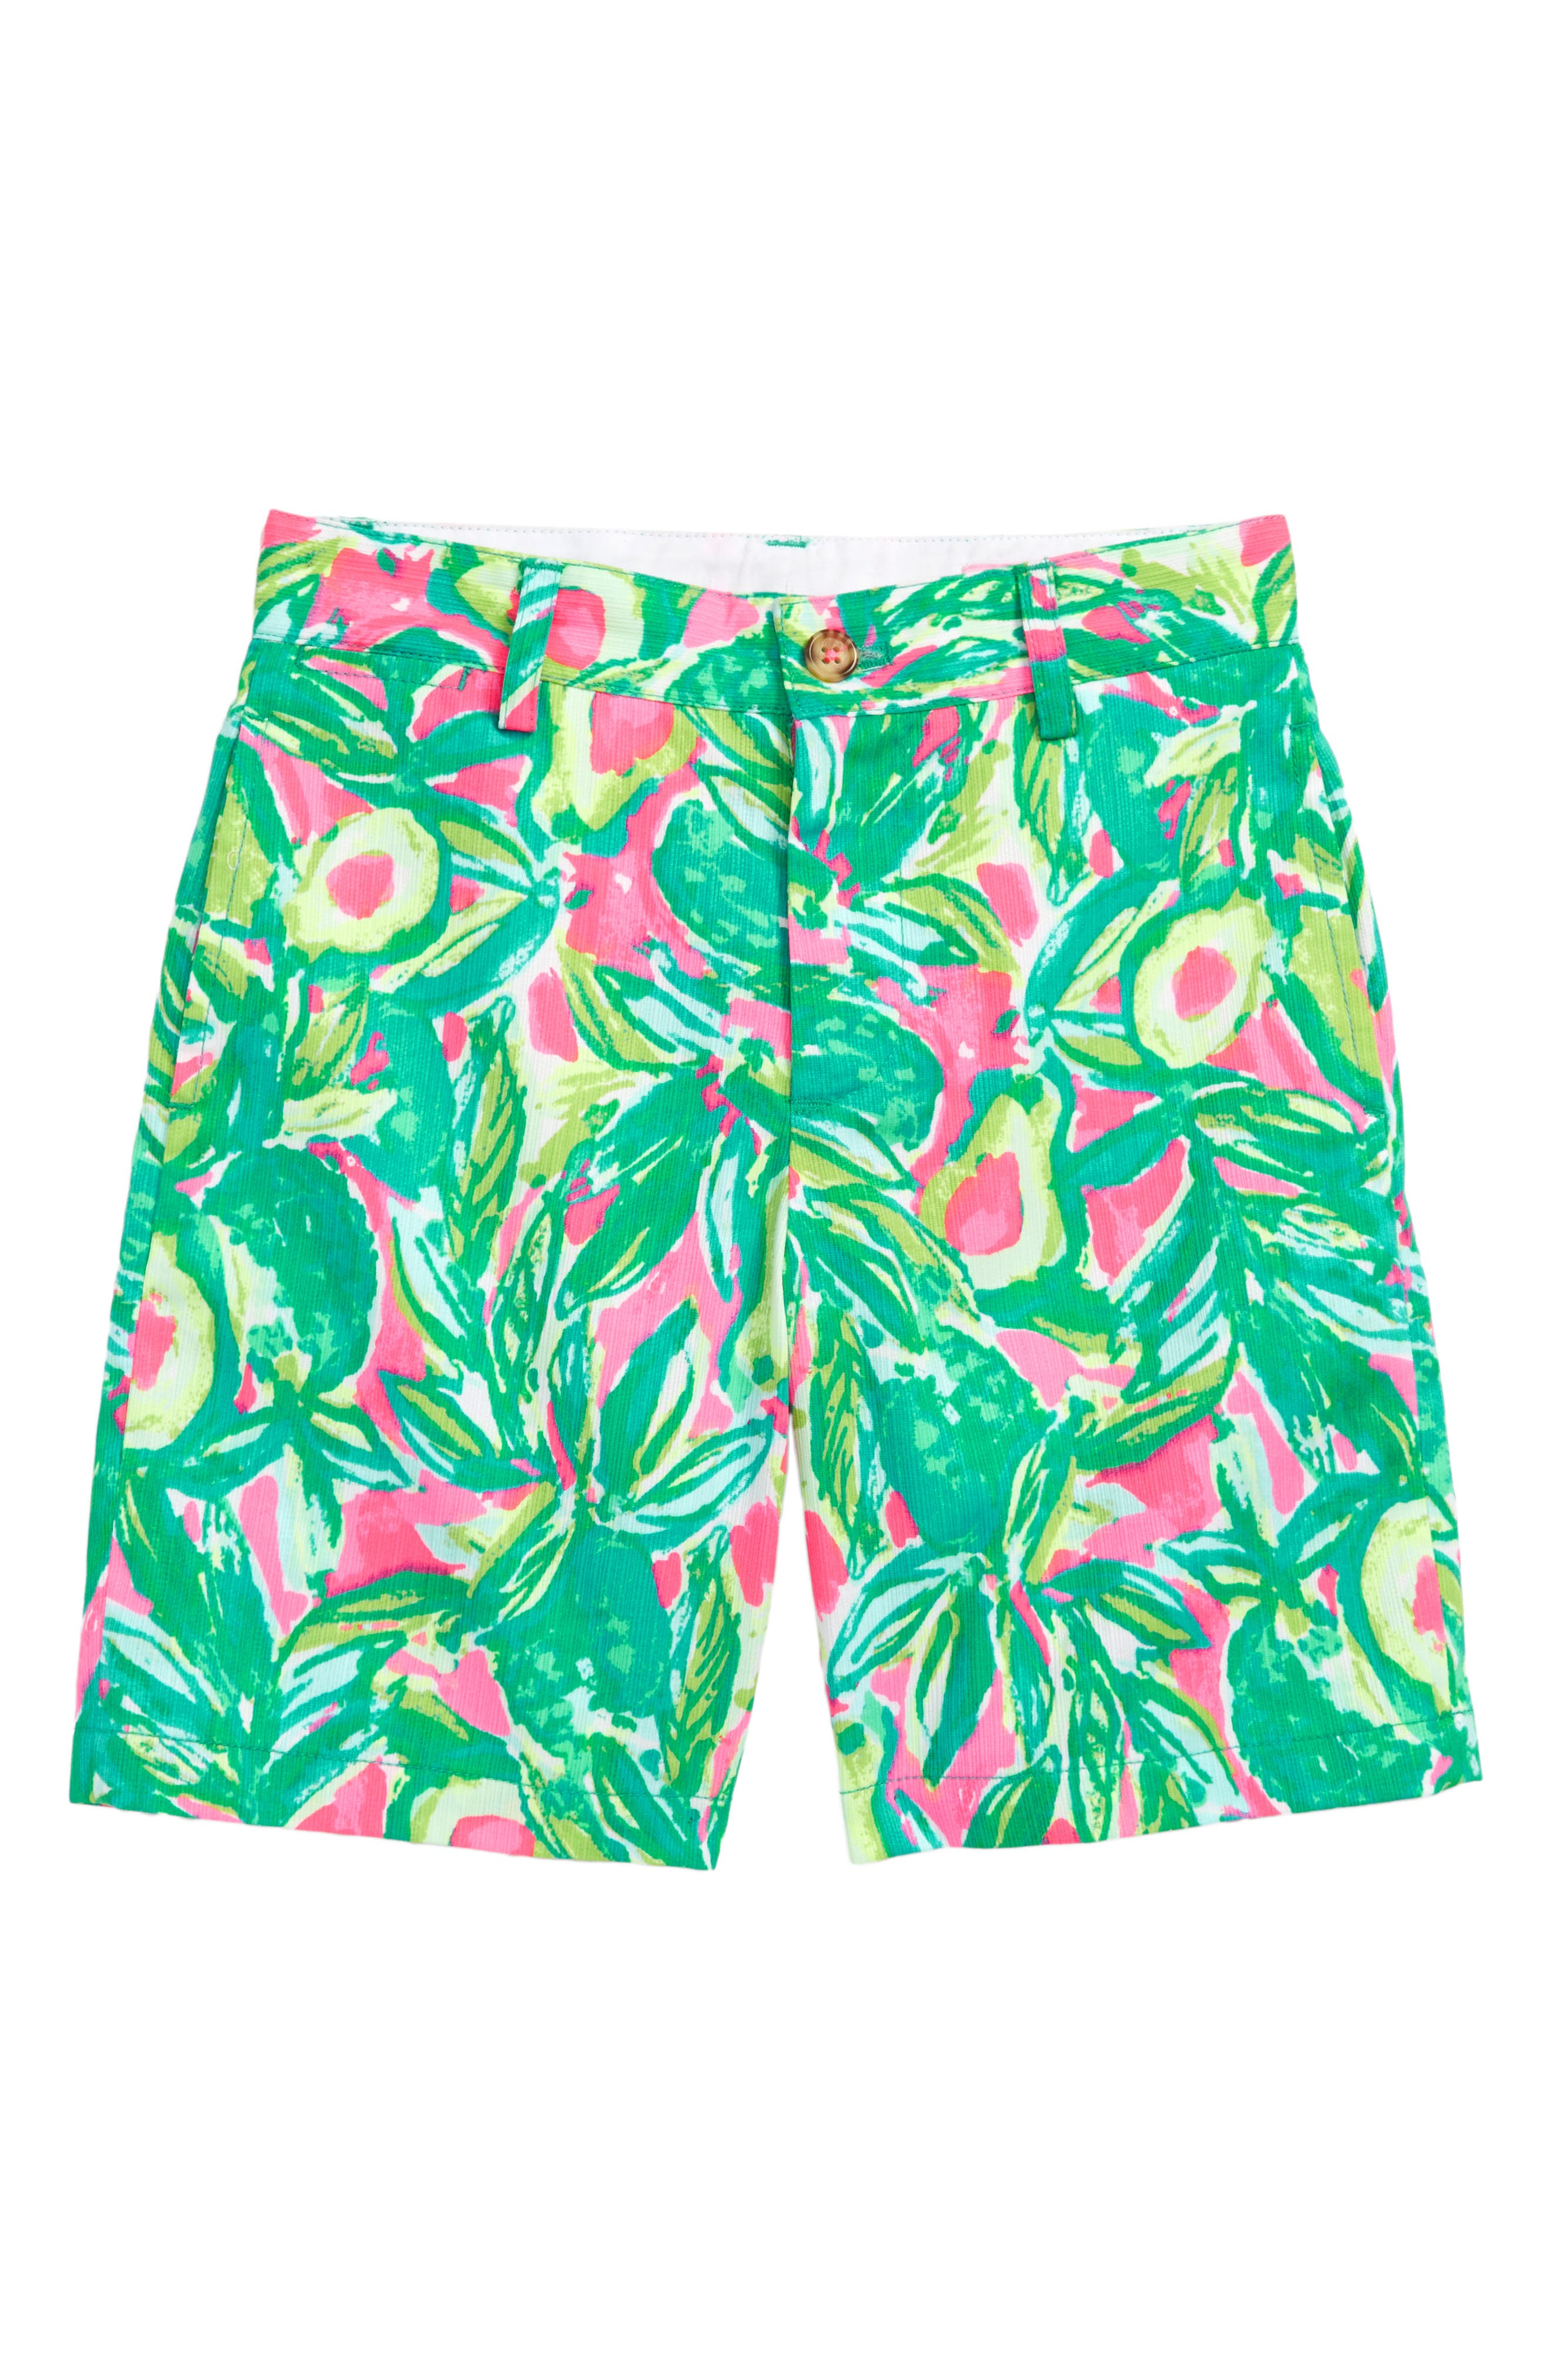 Lily Pulitzer Beaumont Print Shorts,                         Main,                         color, Pink Sunset Guac And Roll